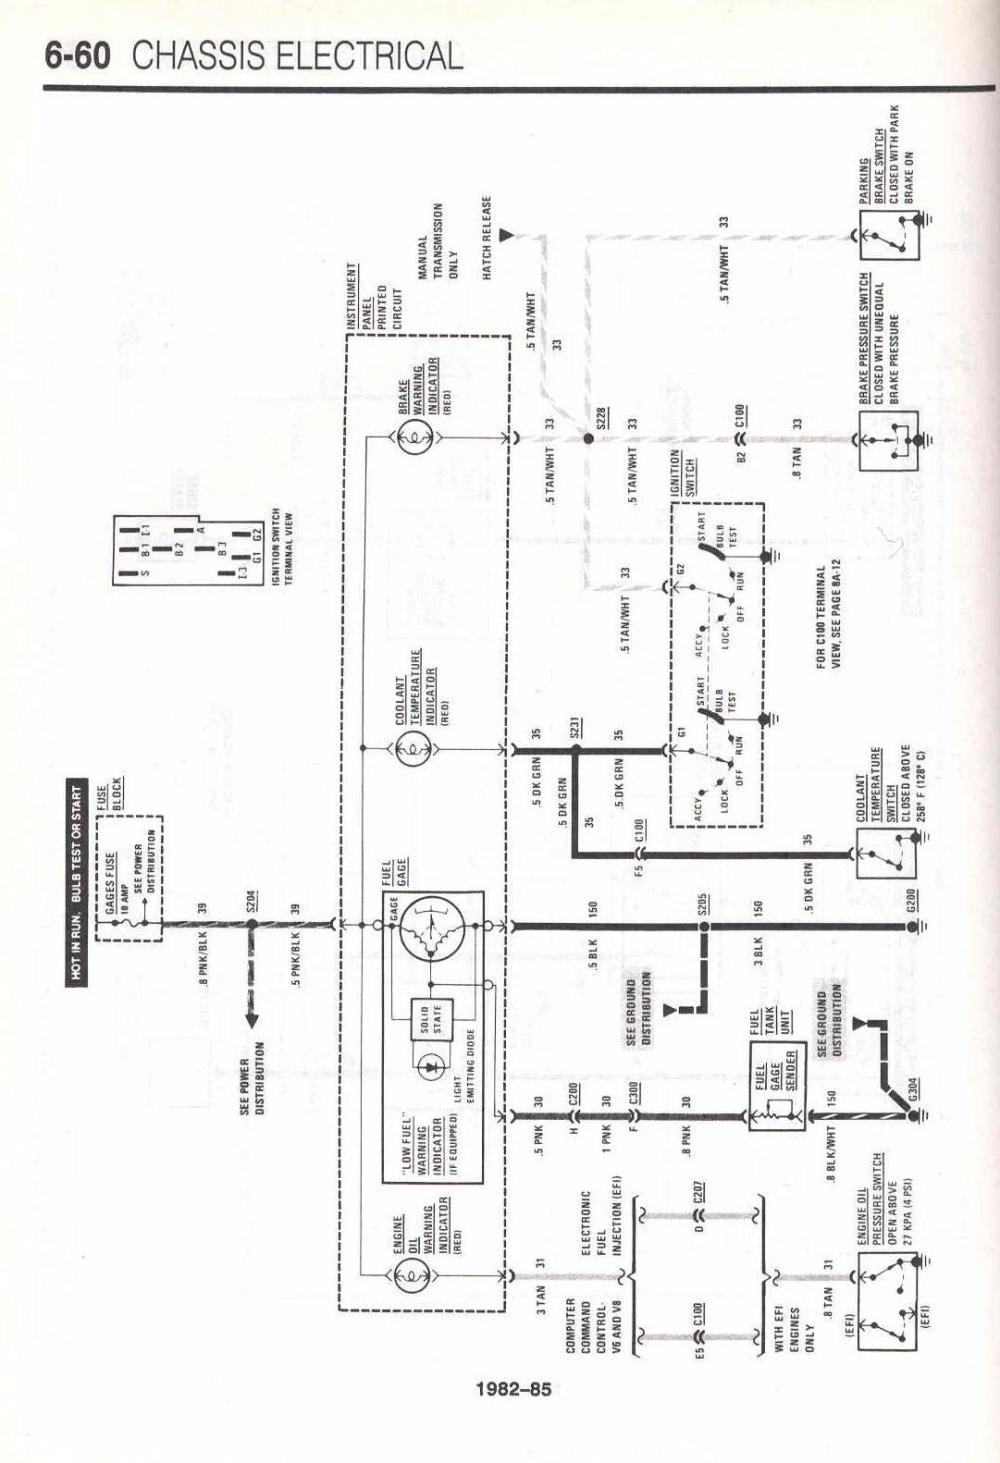 medium resolution of 1981 corvette fuse panel diagram